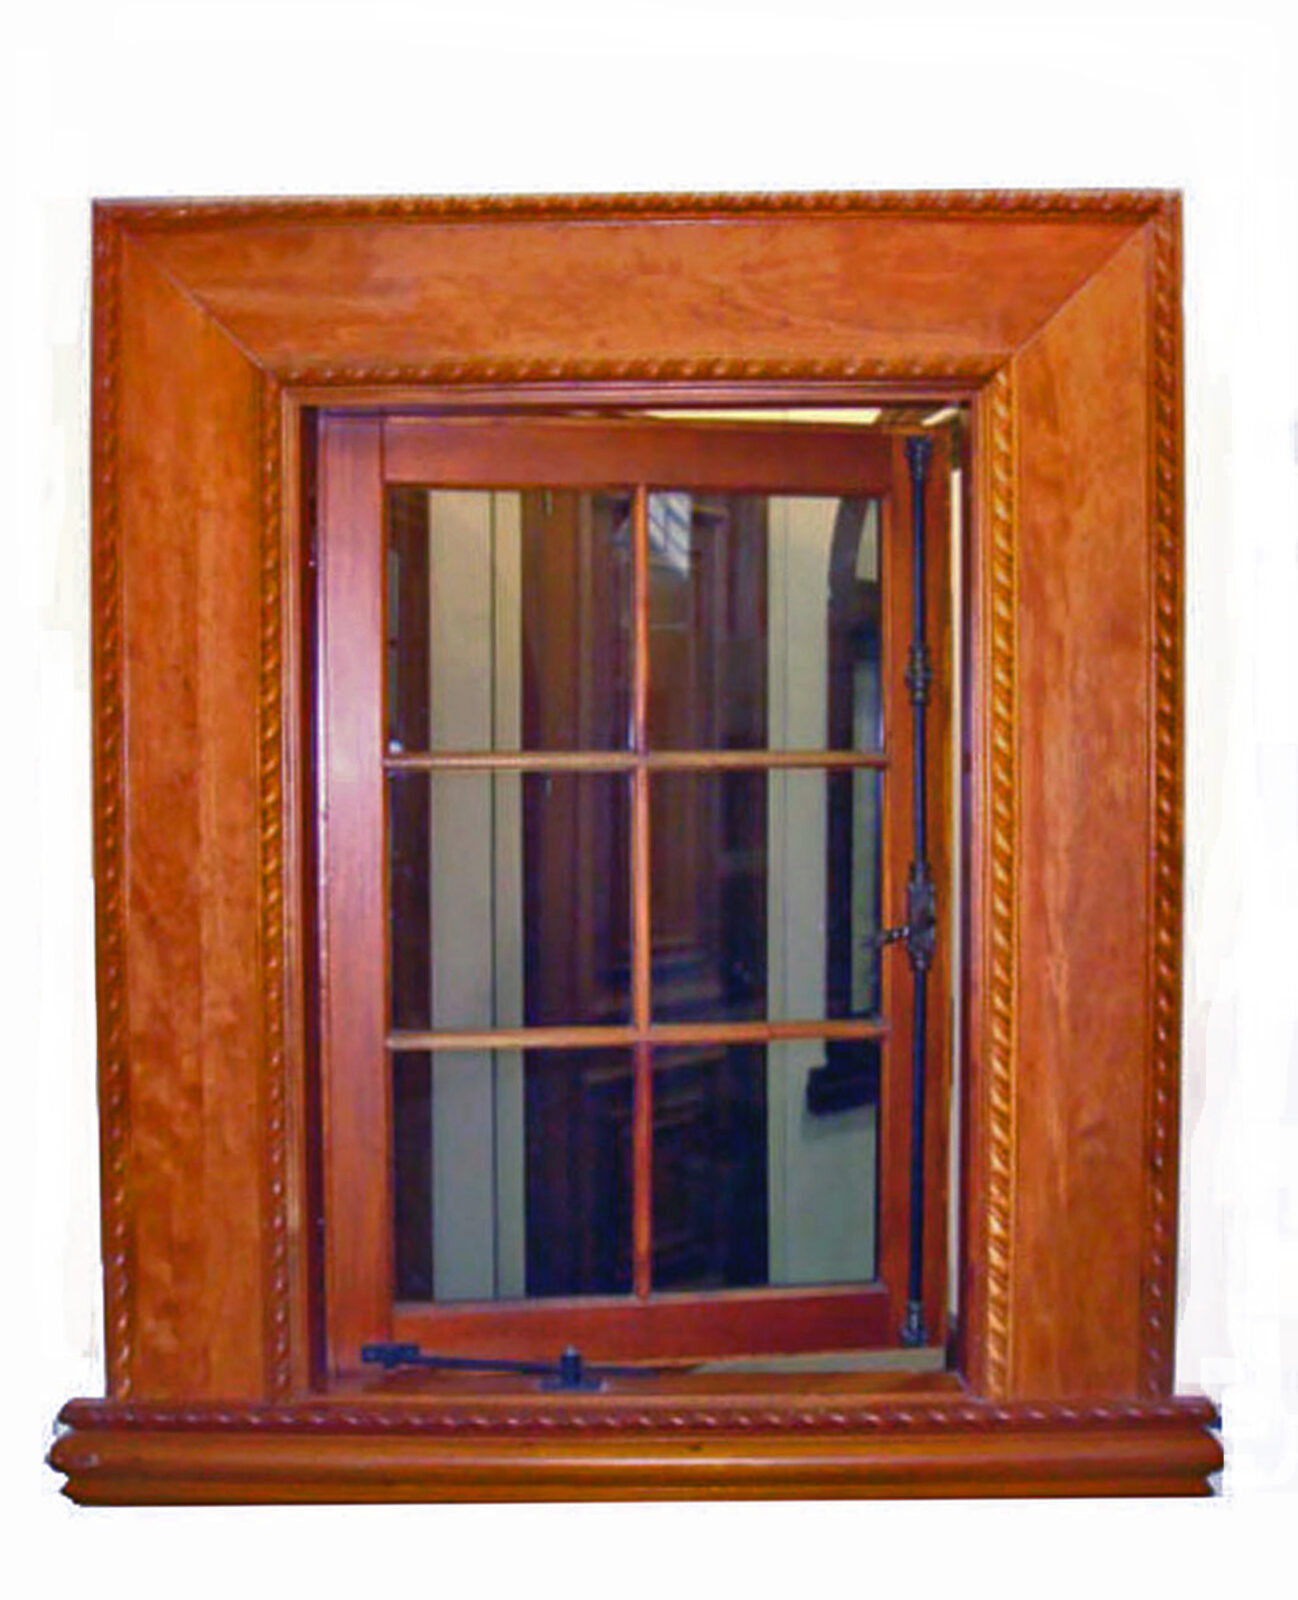 MIRAMAR MAHOGANY CASEMENT WINDOW